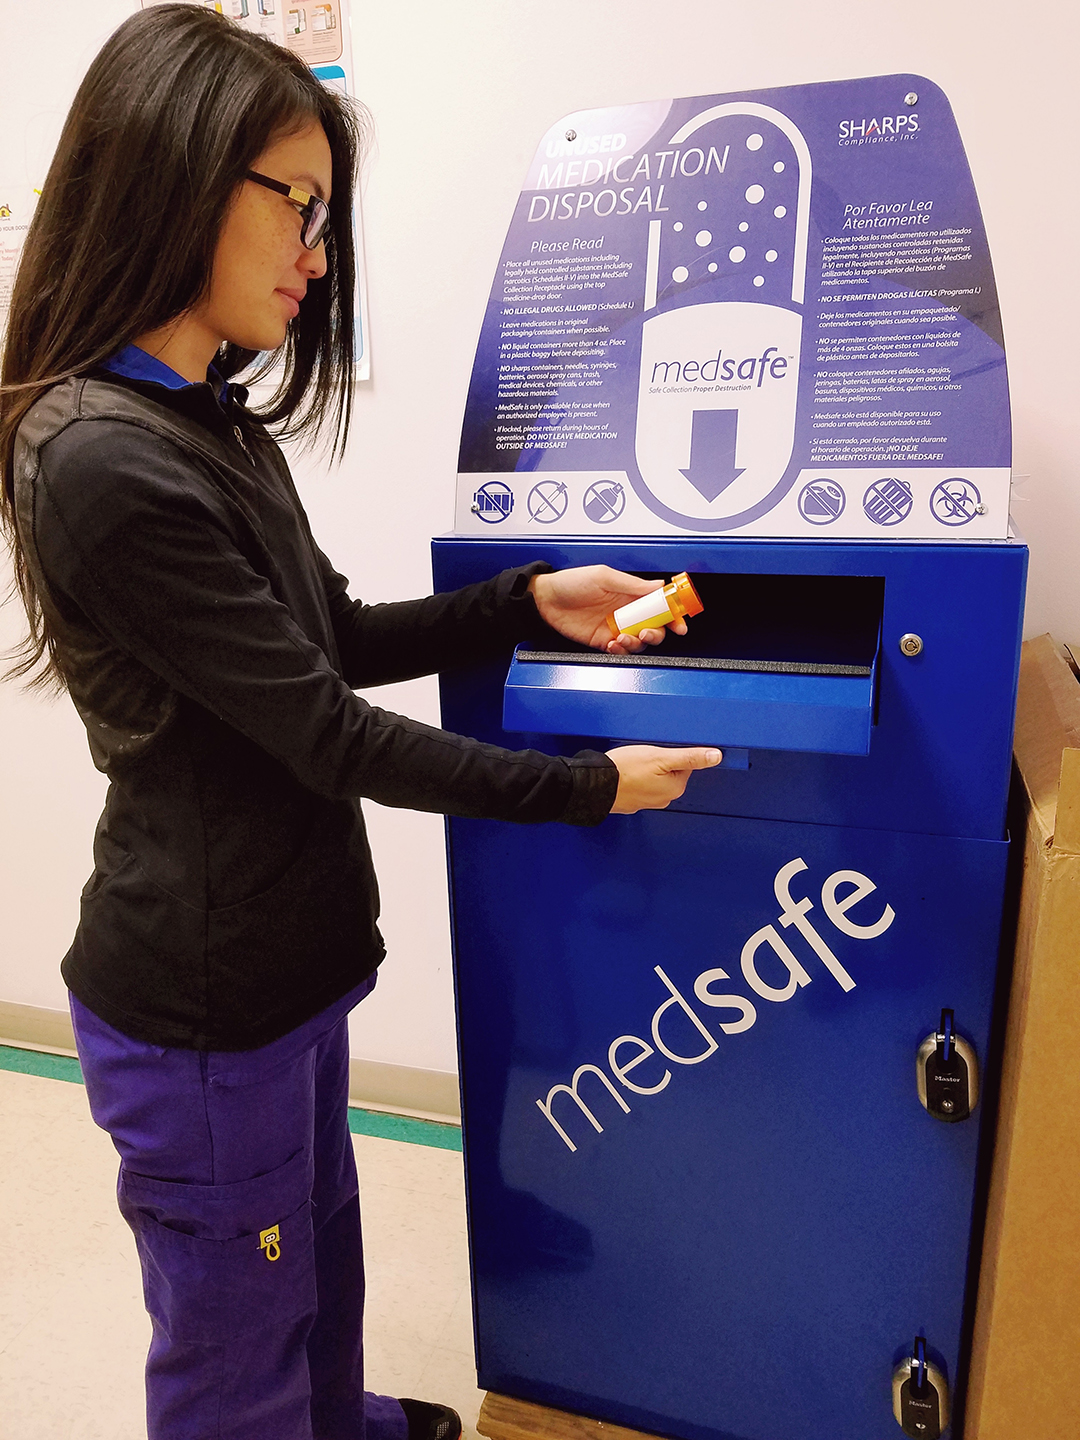 The medication disposal system at Belcourt IHS is user-friendly and environmentally safe.